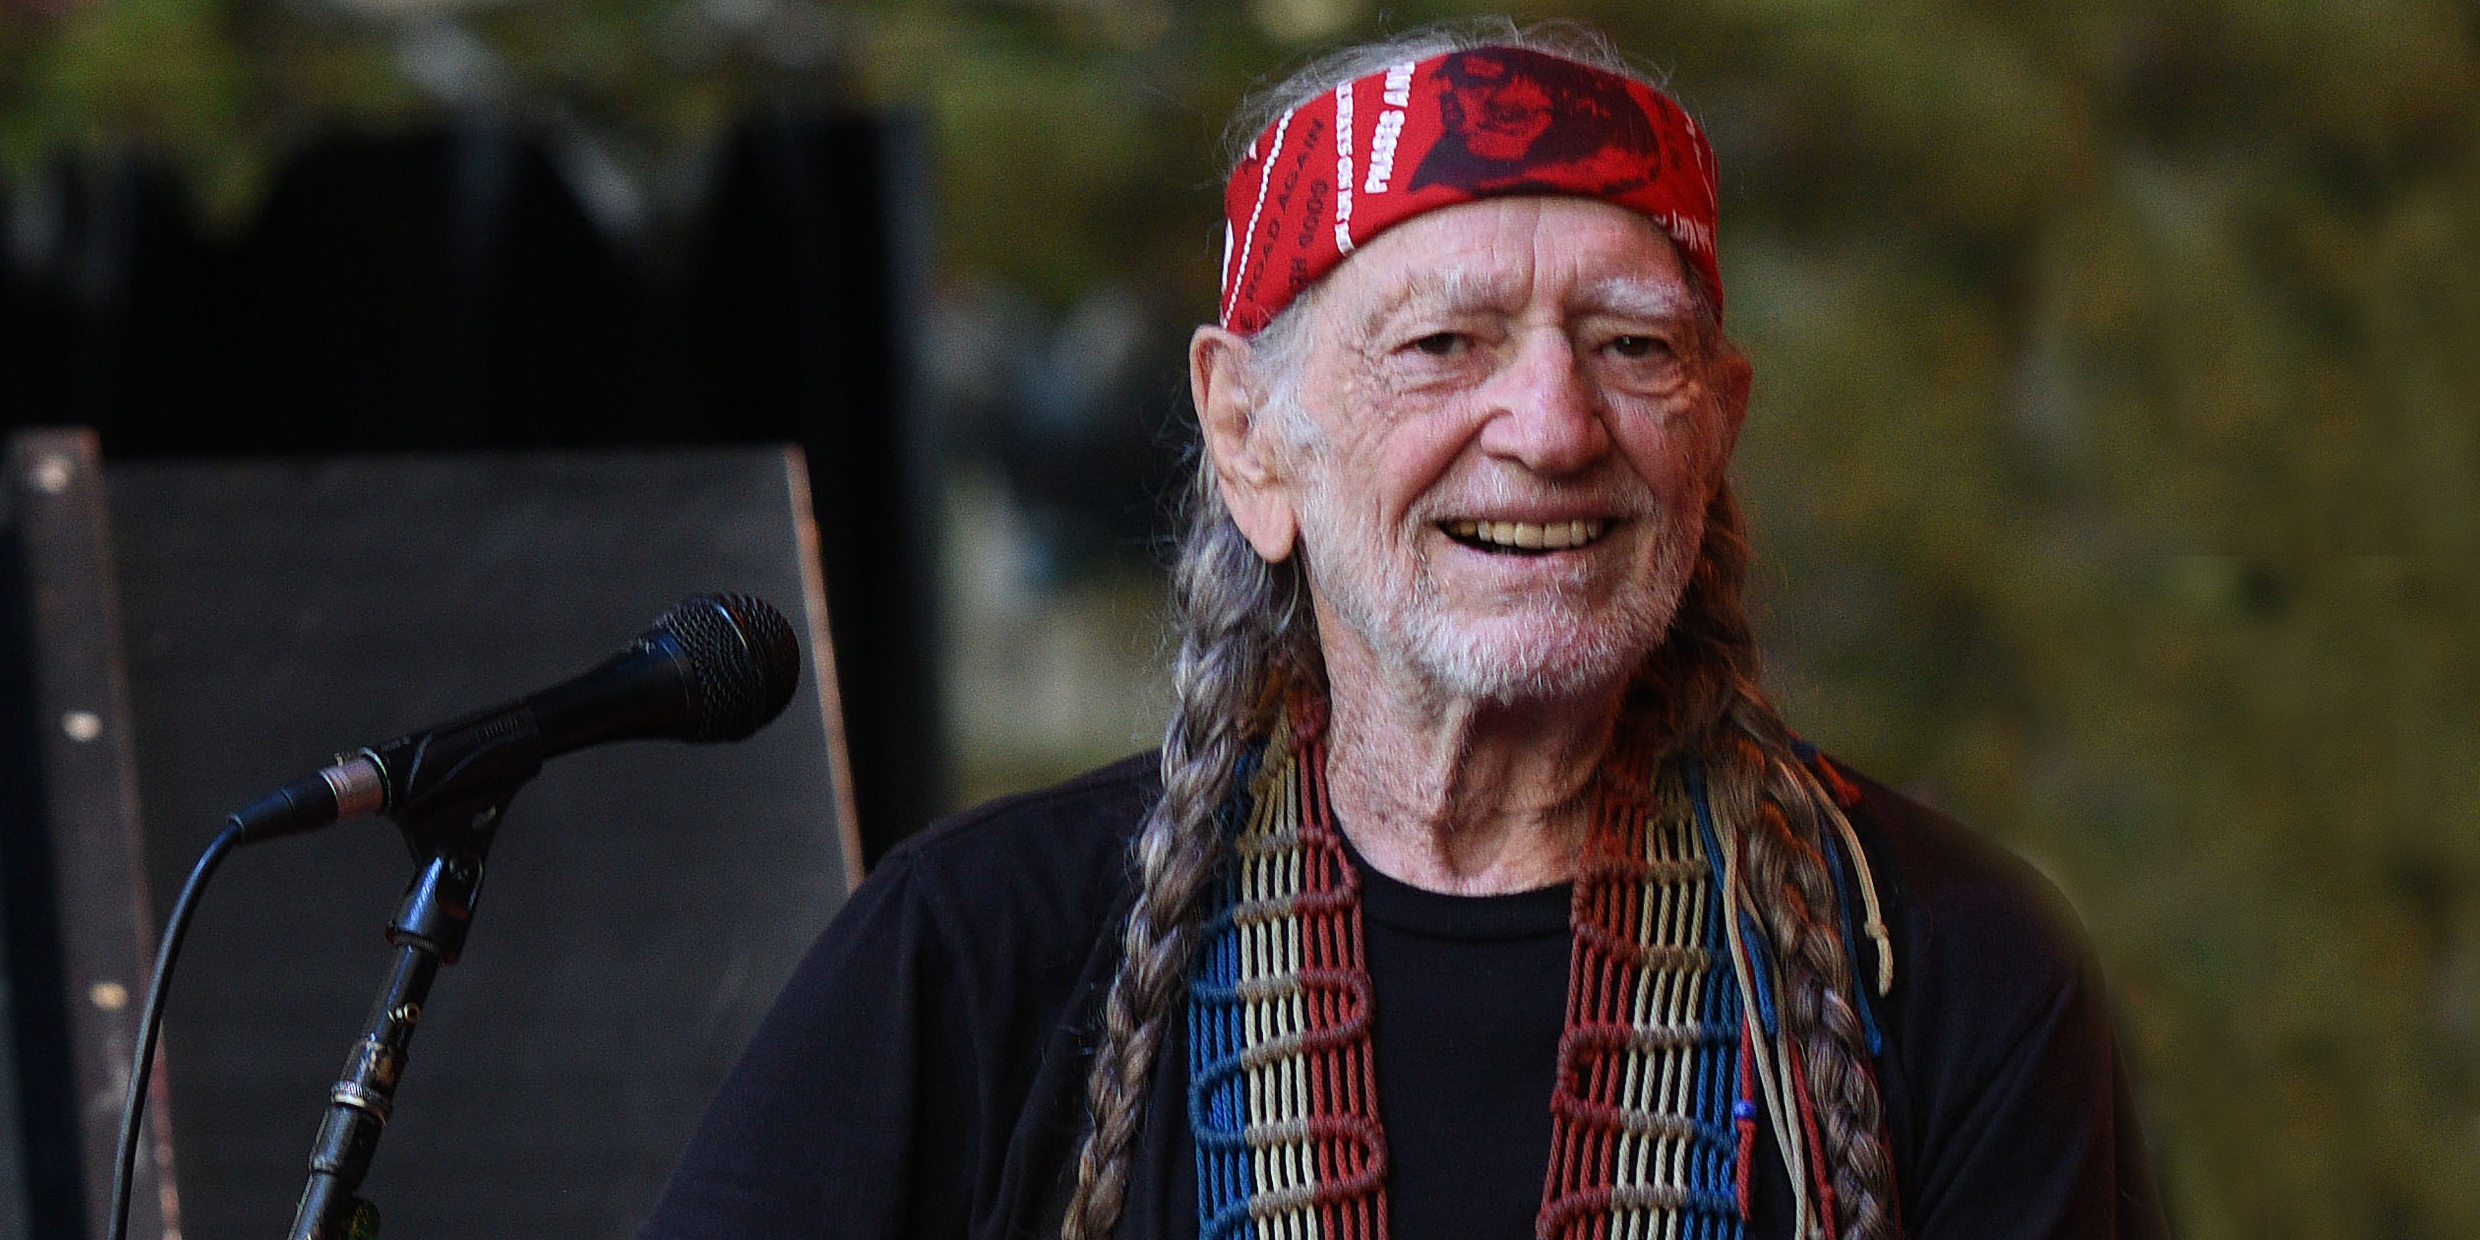 post-image-Willie's Reserve, Willie Nelson's Cannabis Line, Secures Canadian Distribution